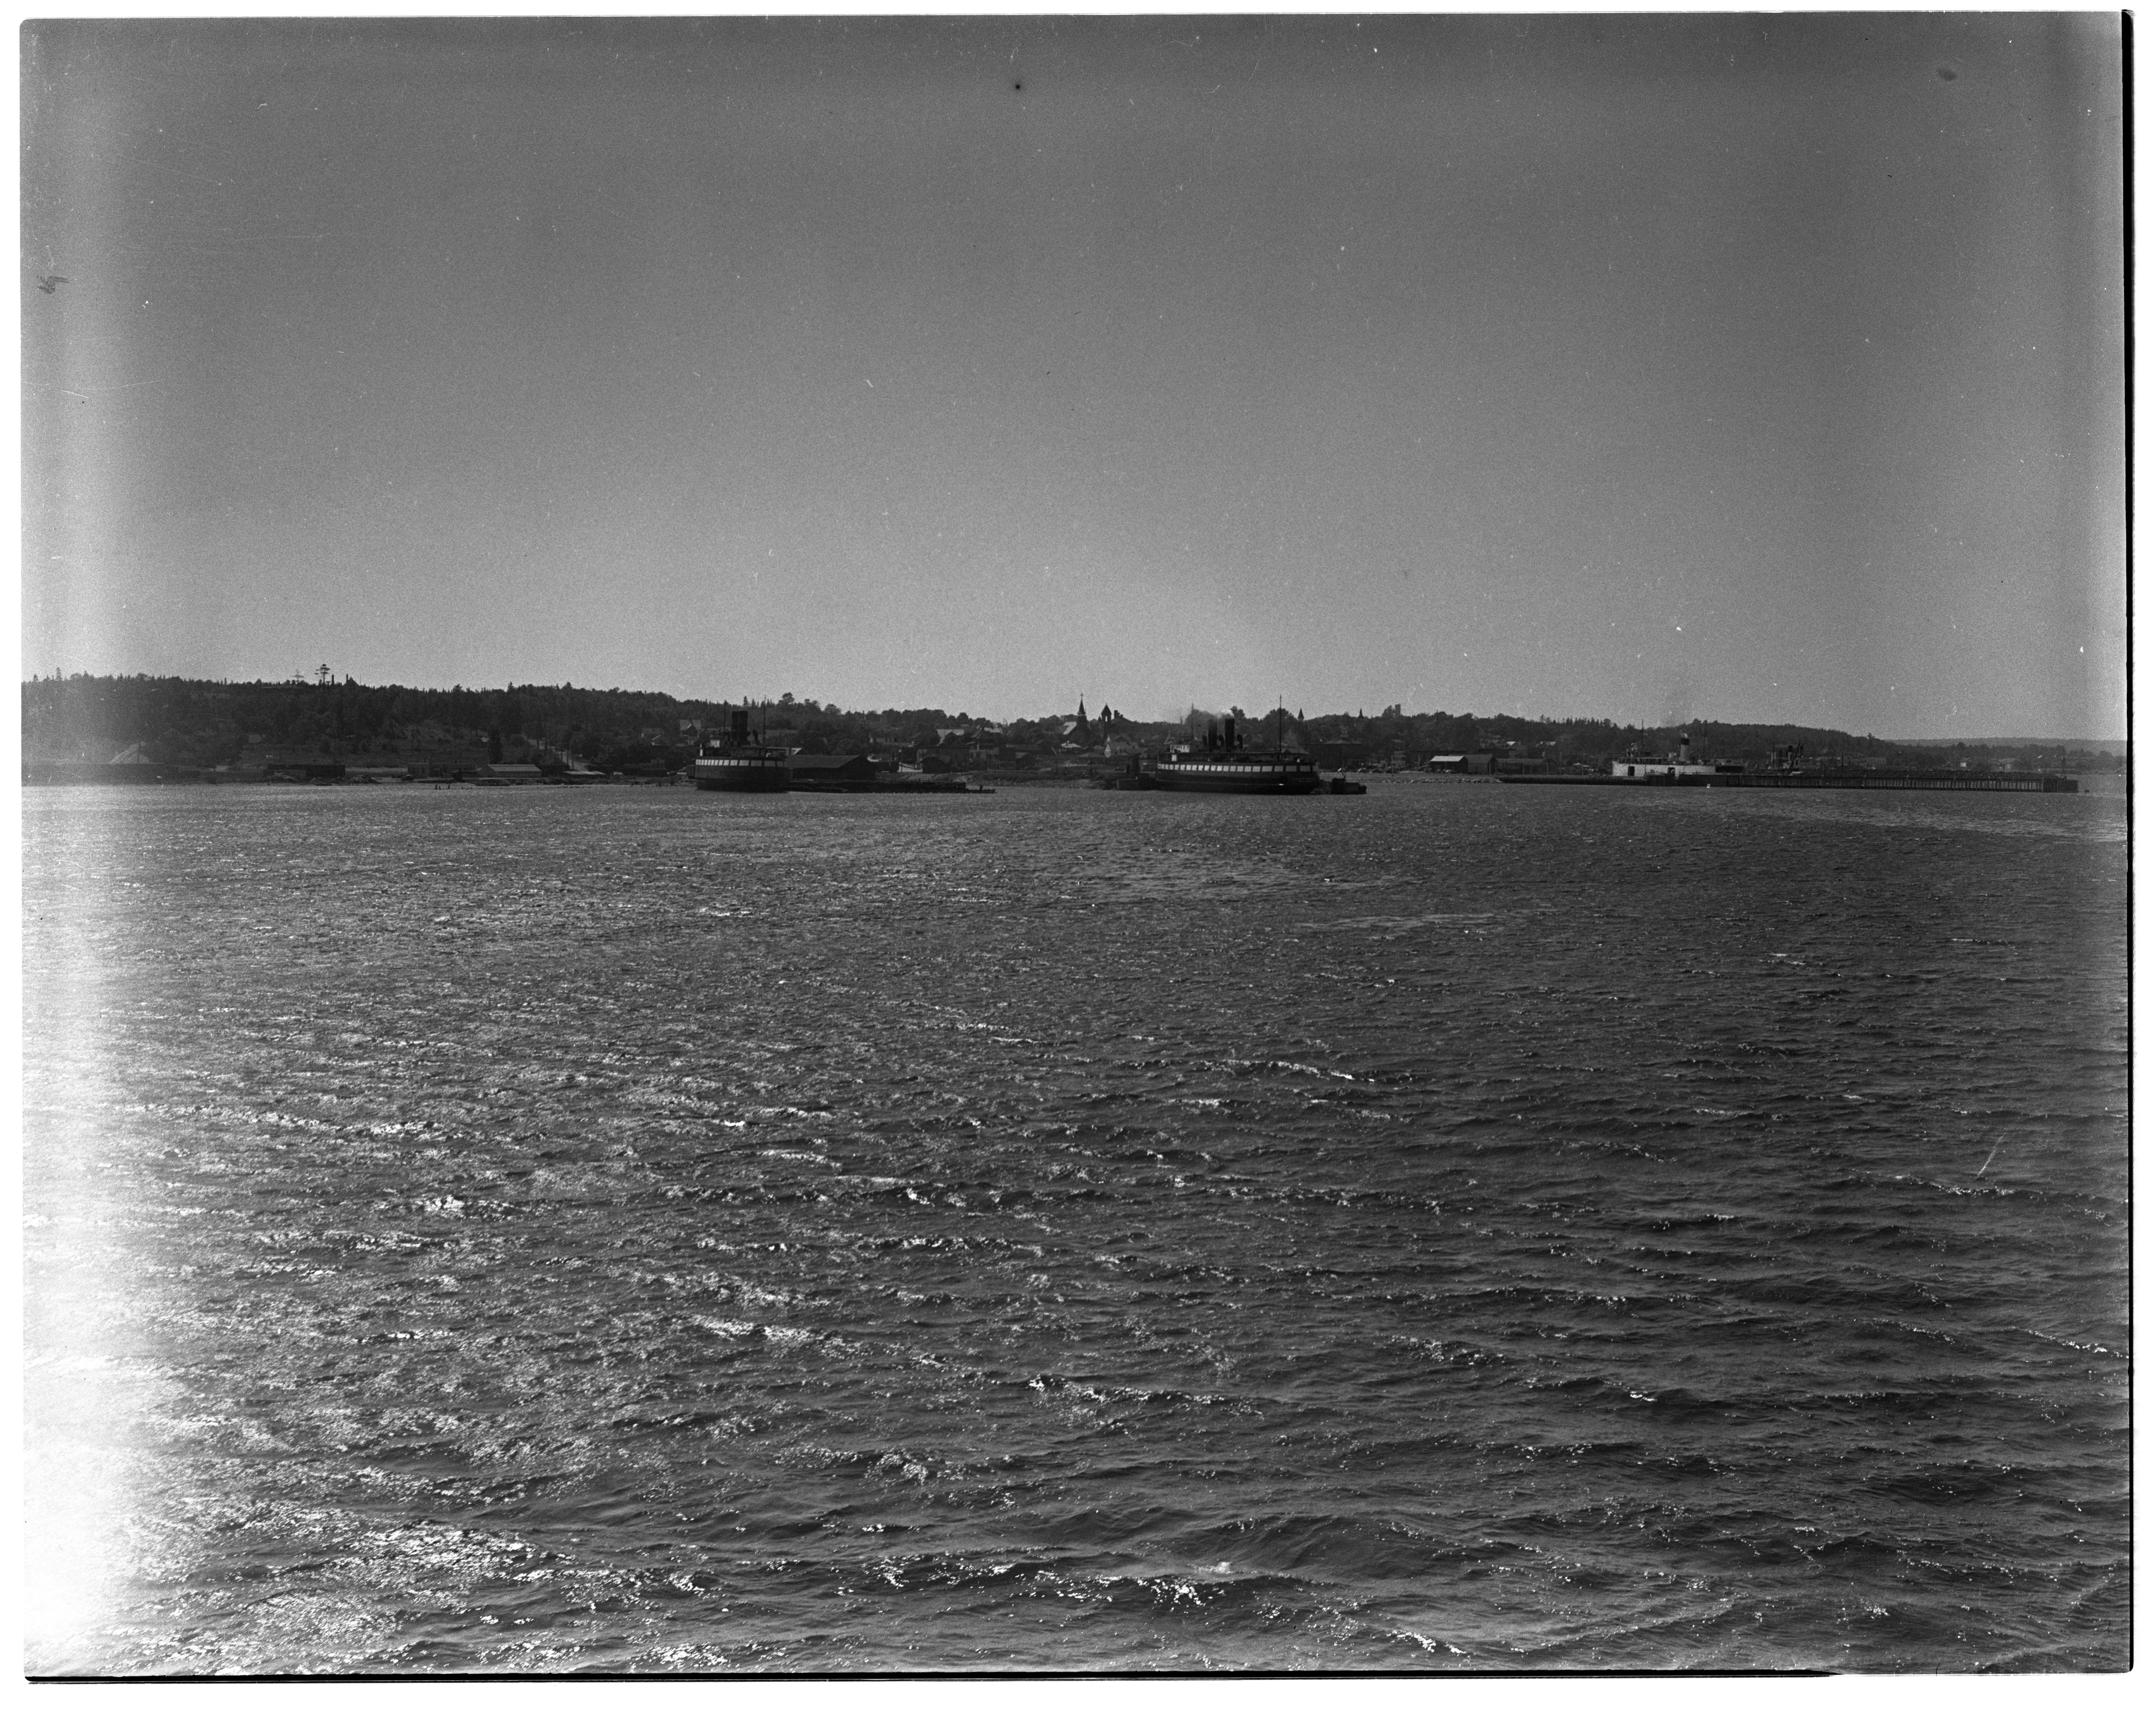 St Ignace, Scene from Ferry image